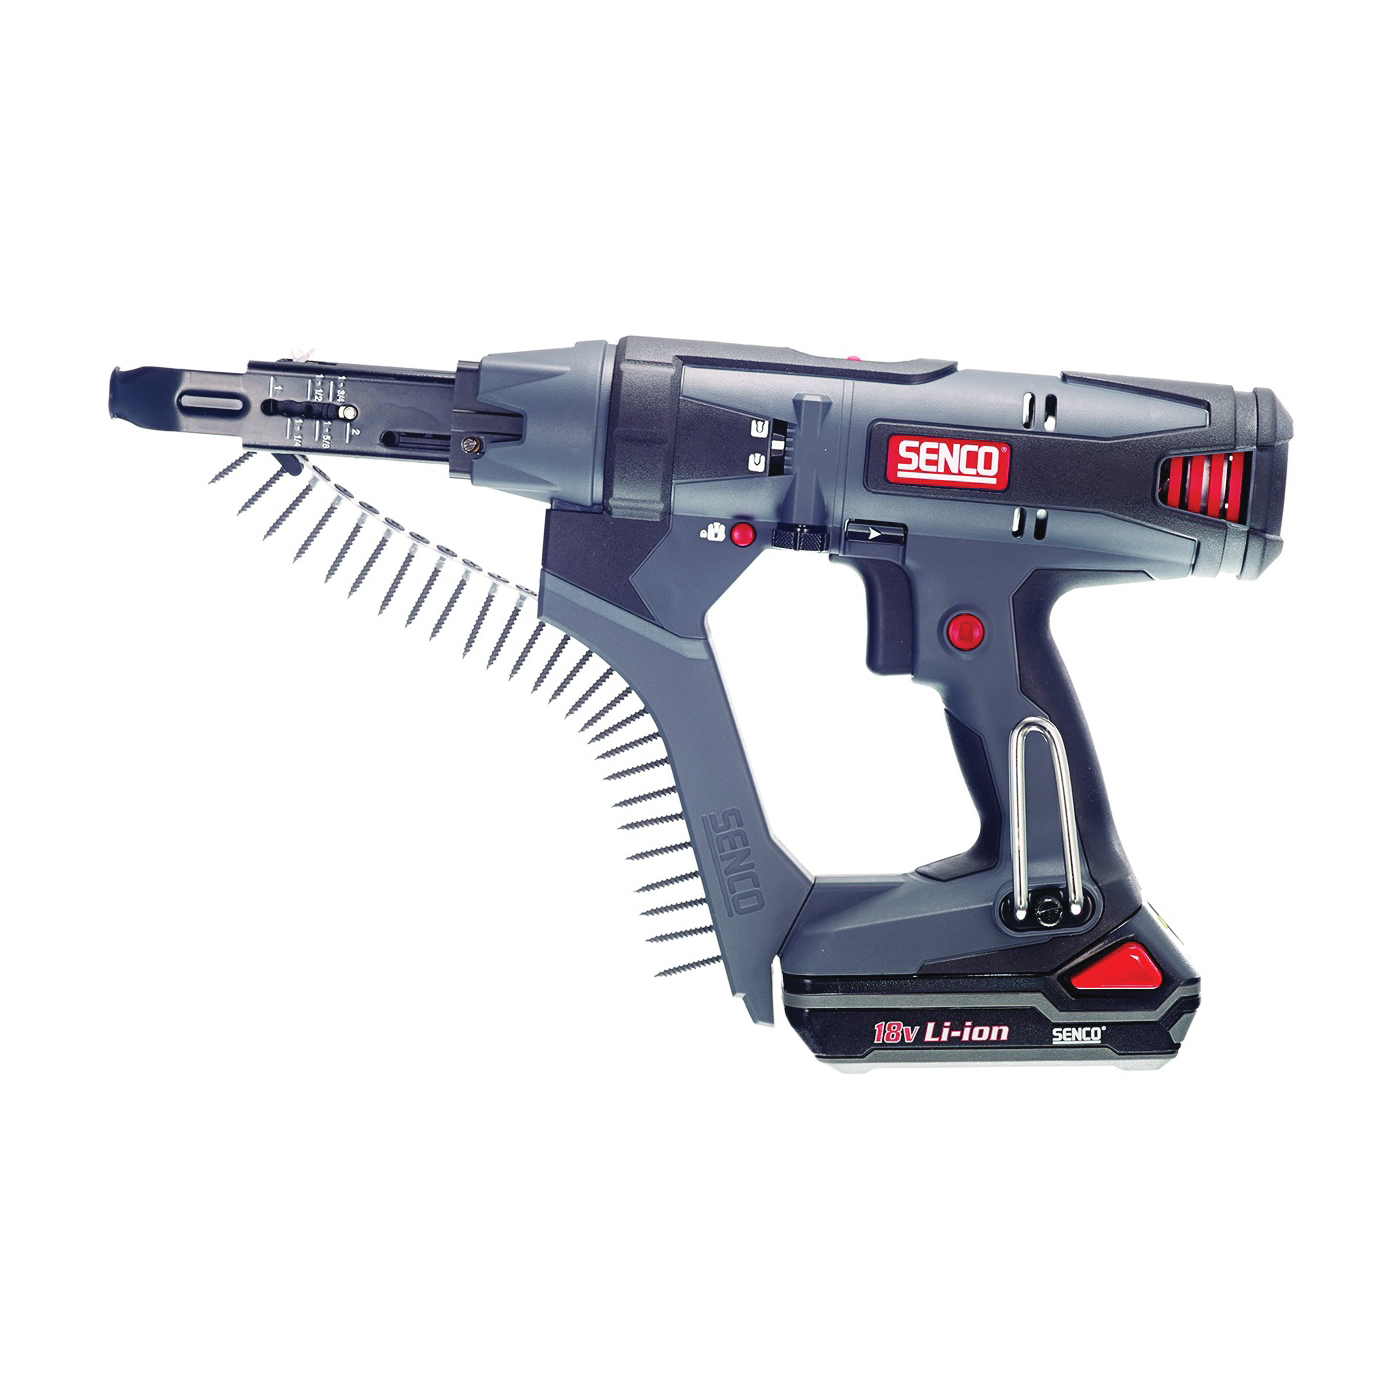 Picture of SENCO 7W0001N Collated Screwdriver, Kit, 18 V Battery, 1.5 Ah, Keyless Chuck, 5000 rpm Speed, 60 in-lb